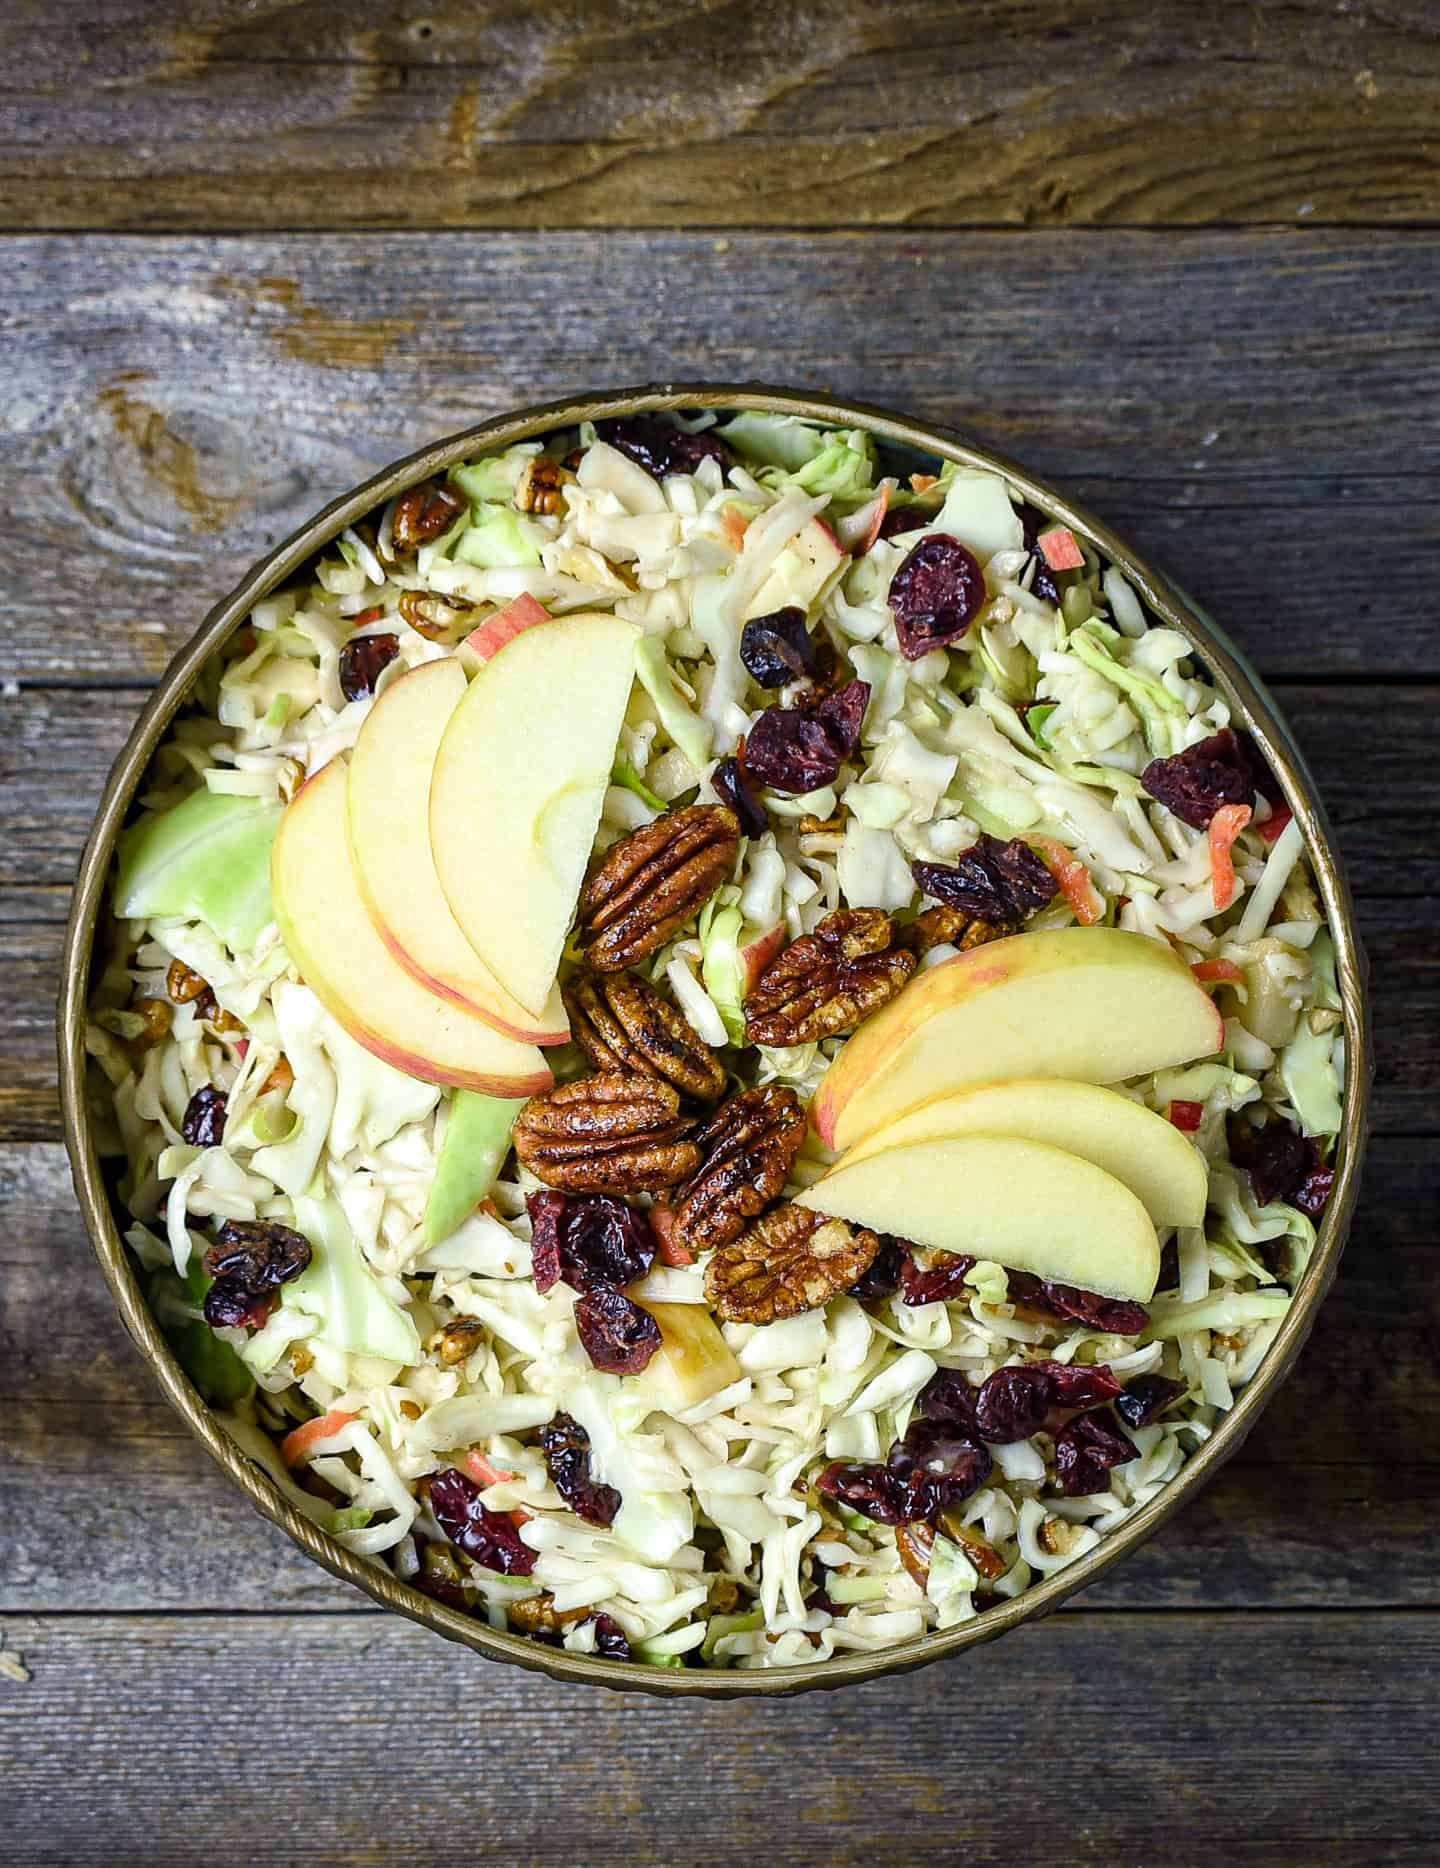 Cranberry coleslaw topped with apples and pecans.